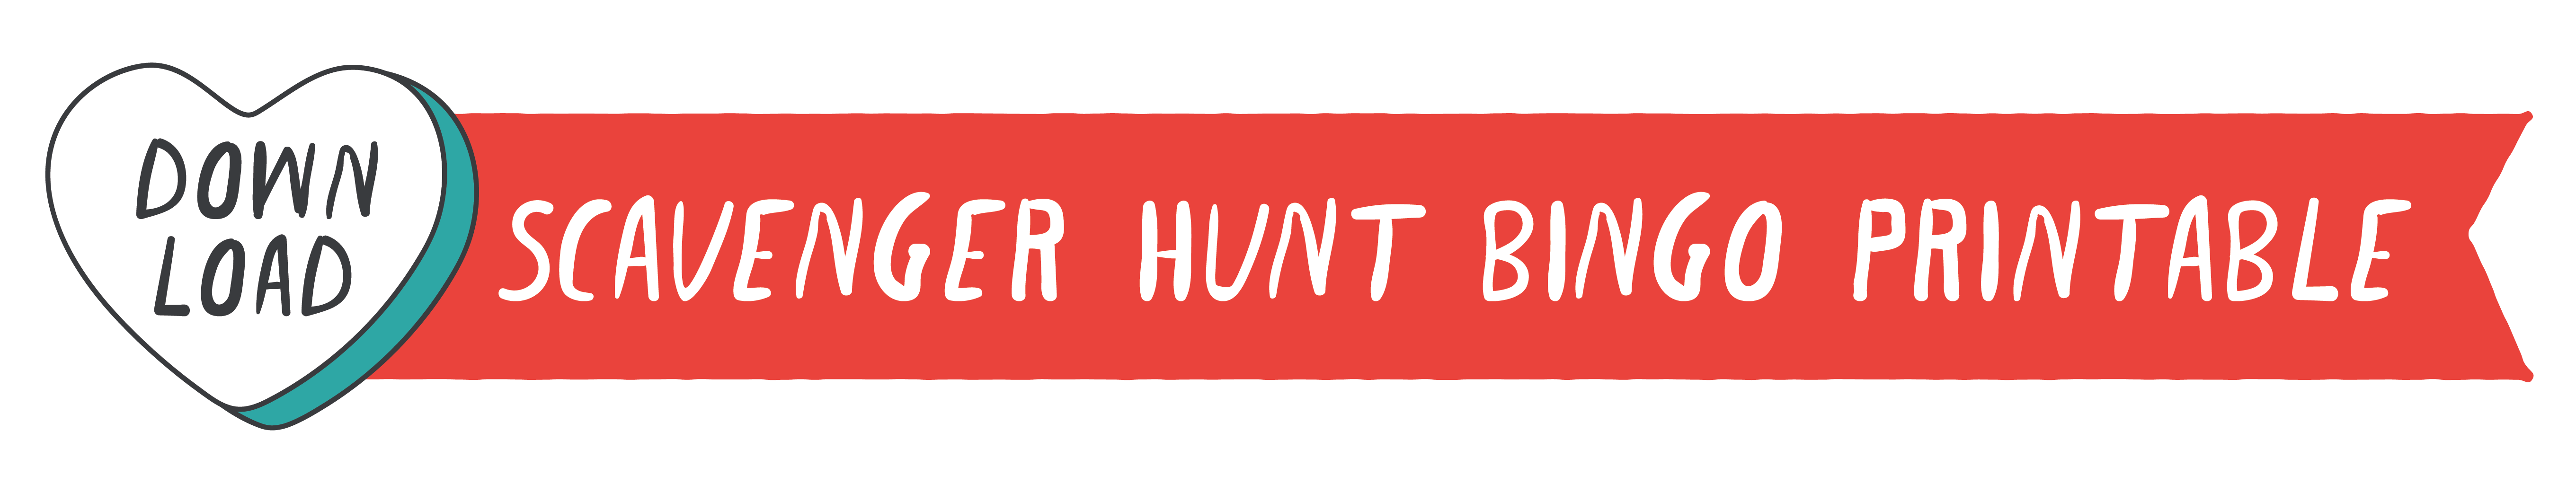 Scavenger Hunt Bingo Printable